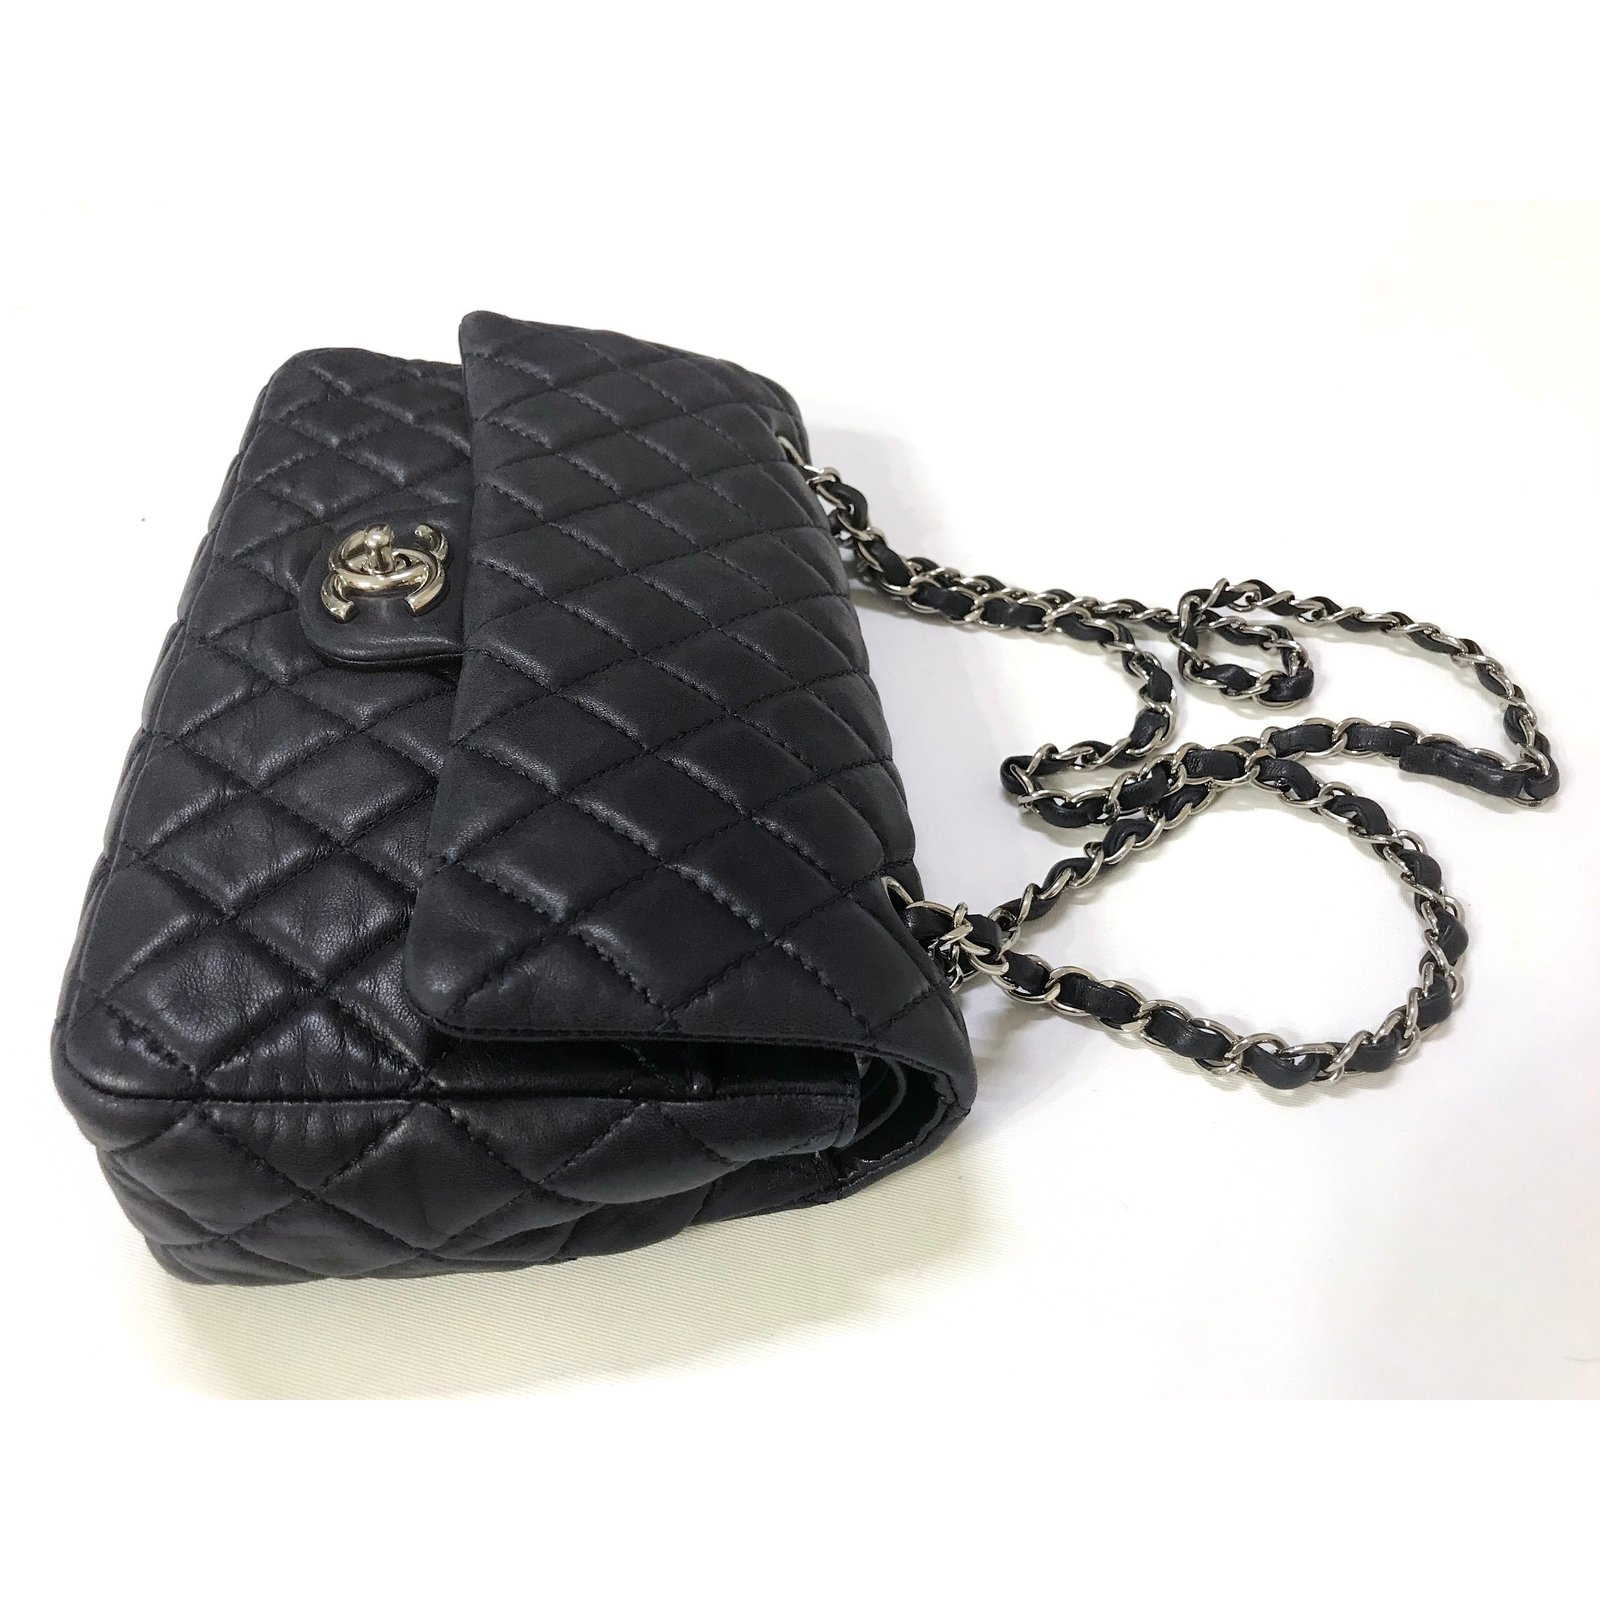 139354908682f4 Facebook · Pin This. Chanel Timeless Medium Double Flap Bag Handbags  Leather Navy blue ...